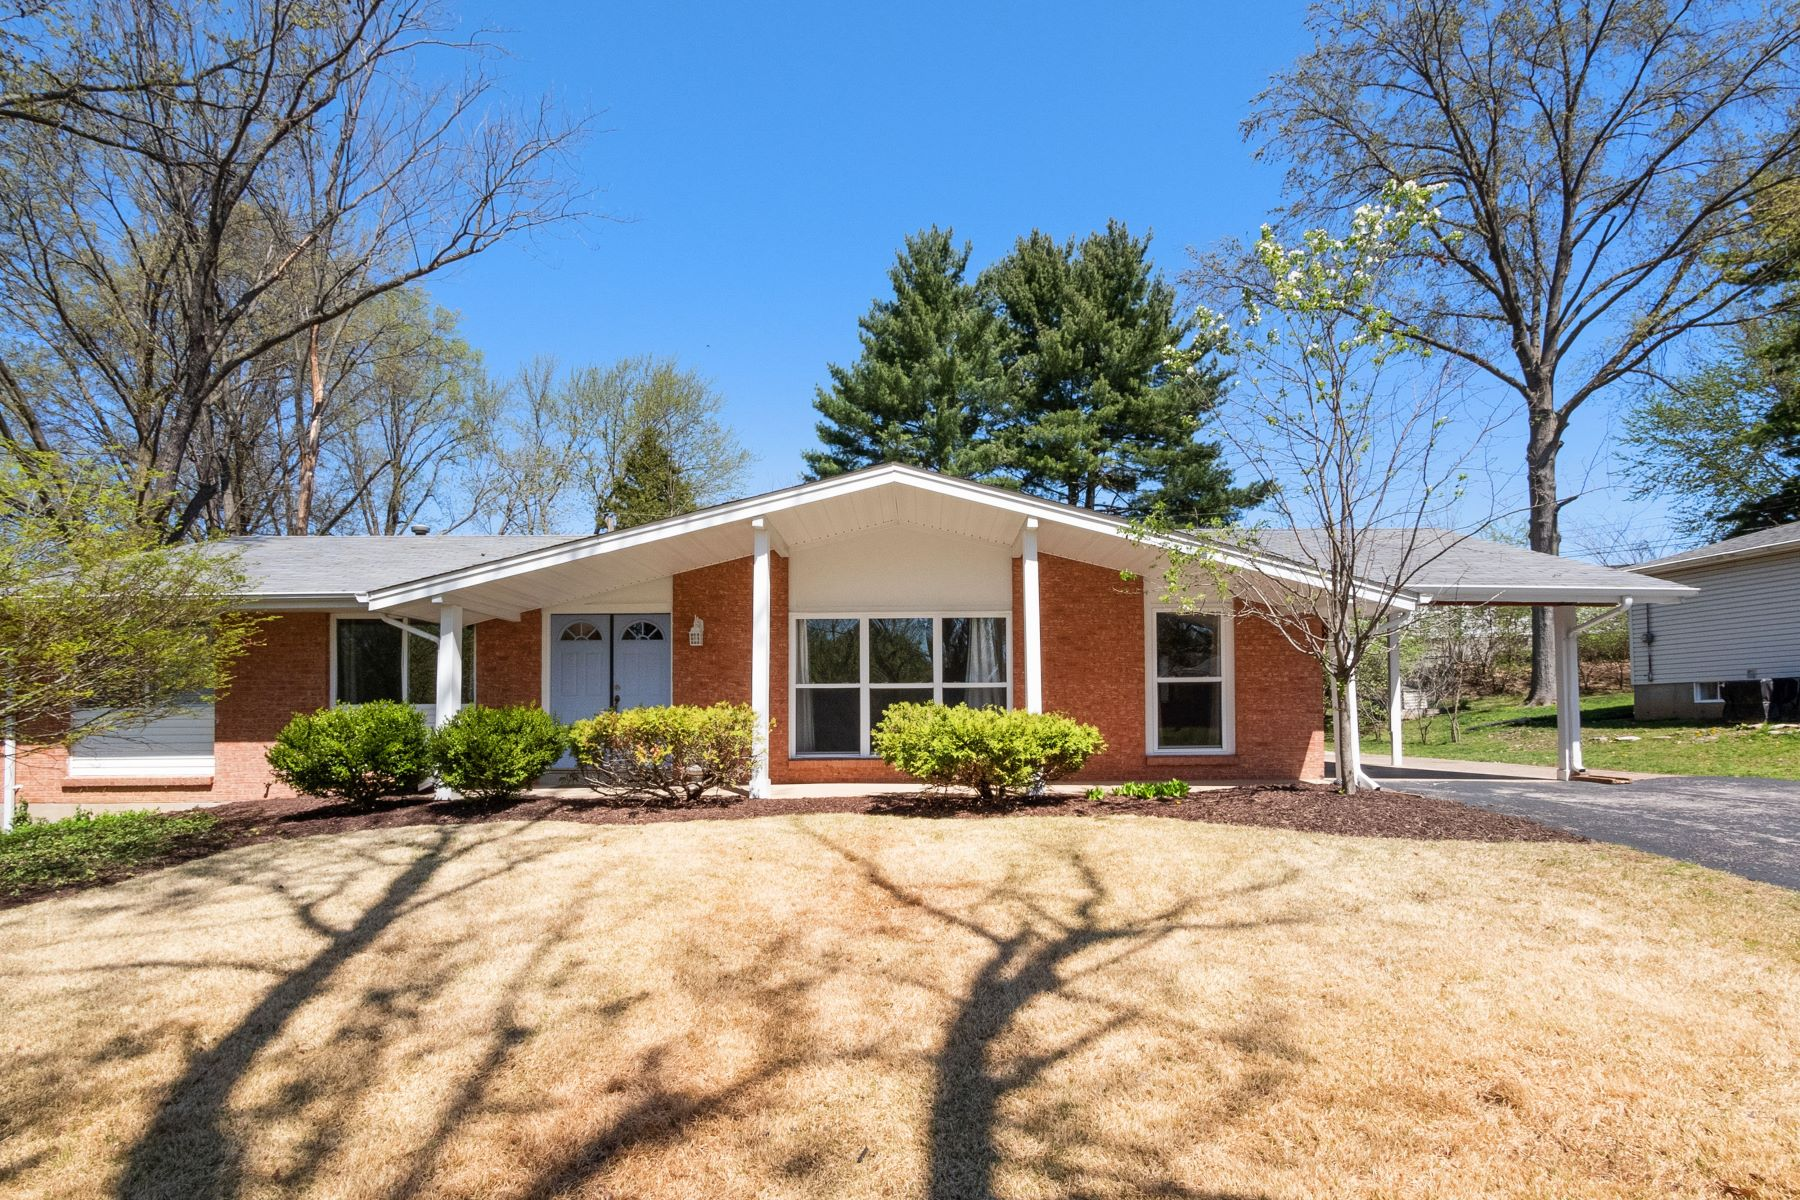 Single Family Home for Sale at Beautiful 3 Bedroom Ranch in Parkway School District 1135 Mackinac Drive St. Louis, Missouri 63146 United States